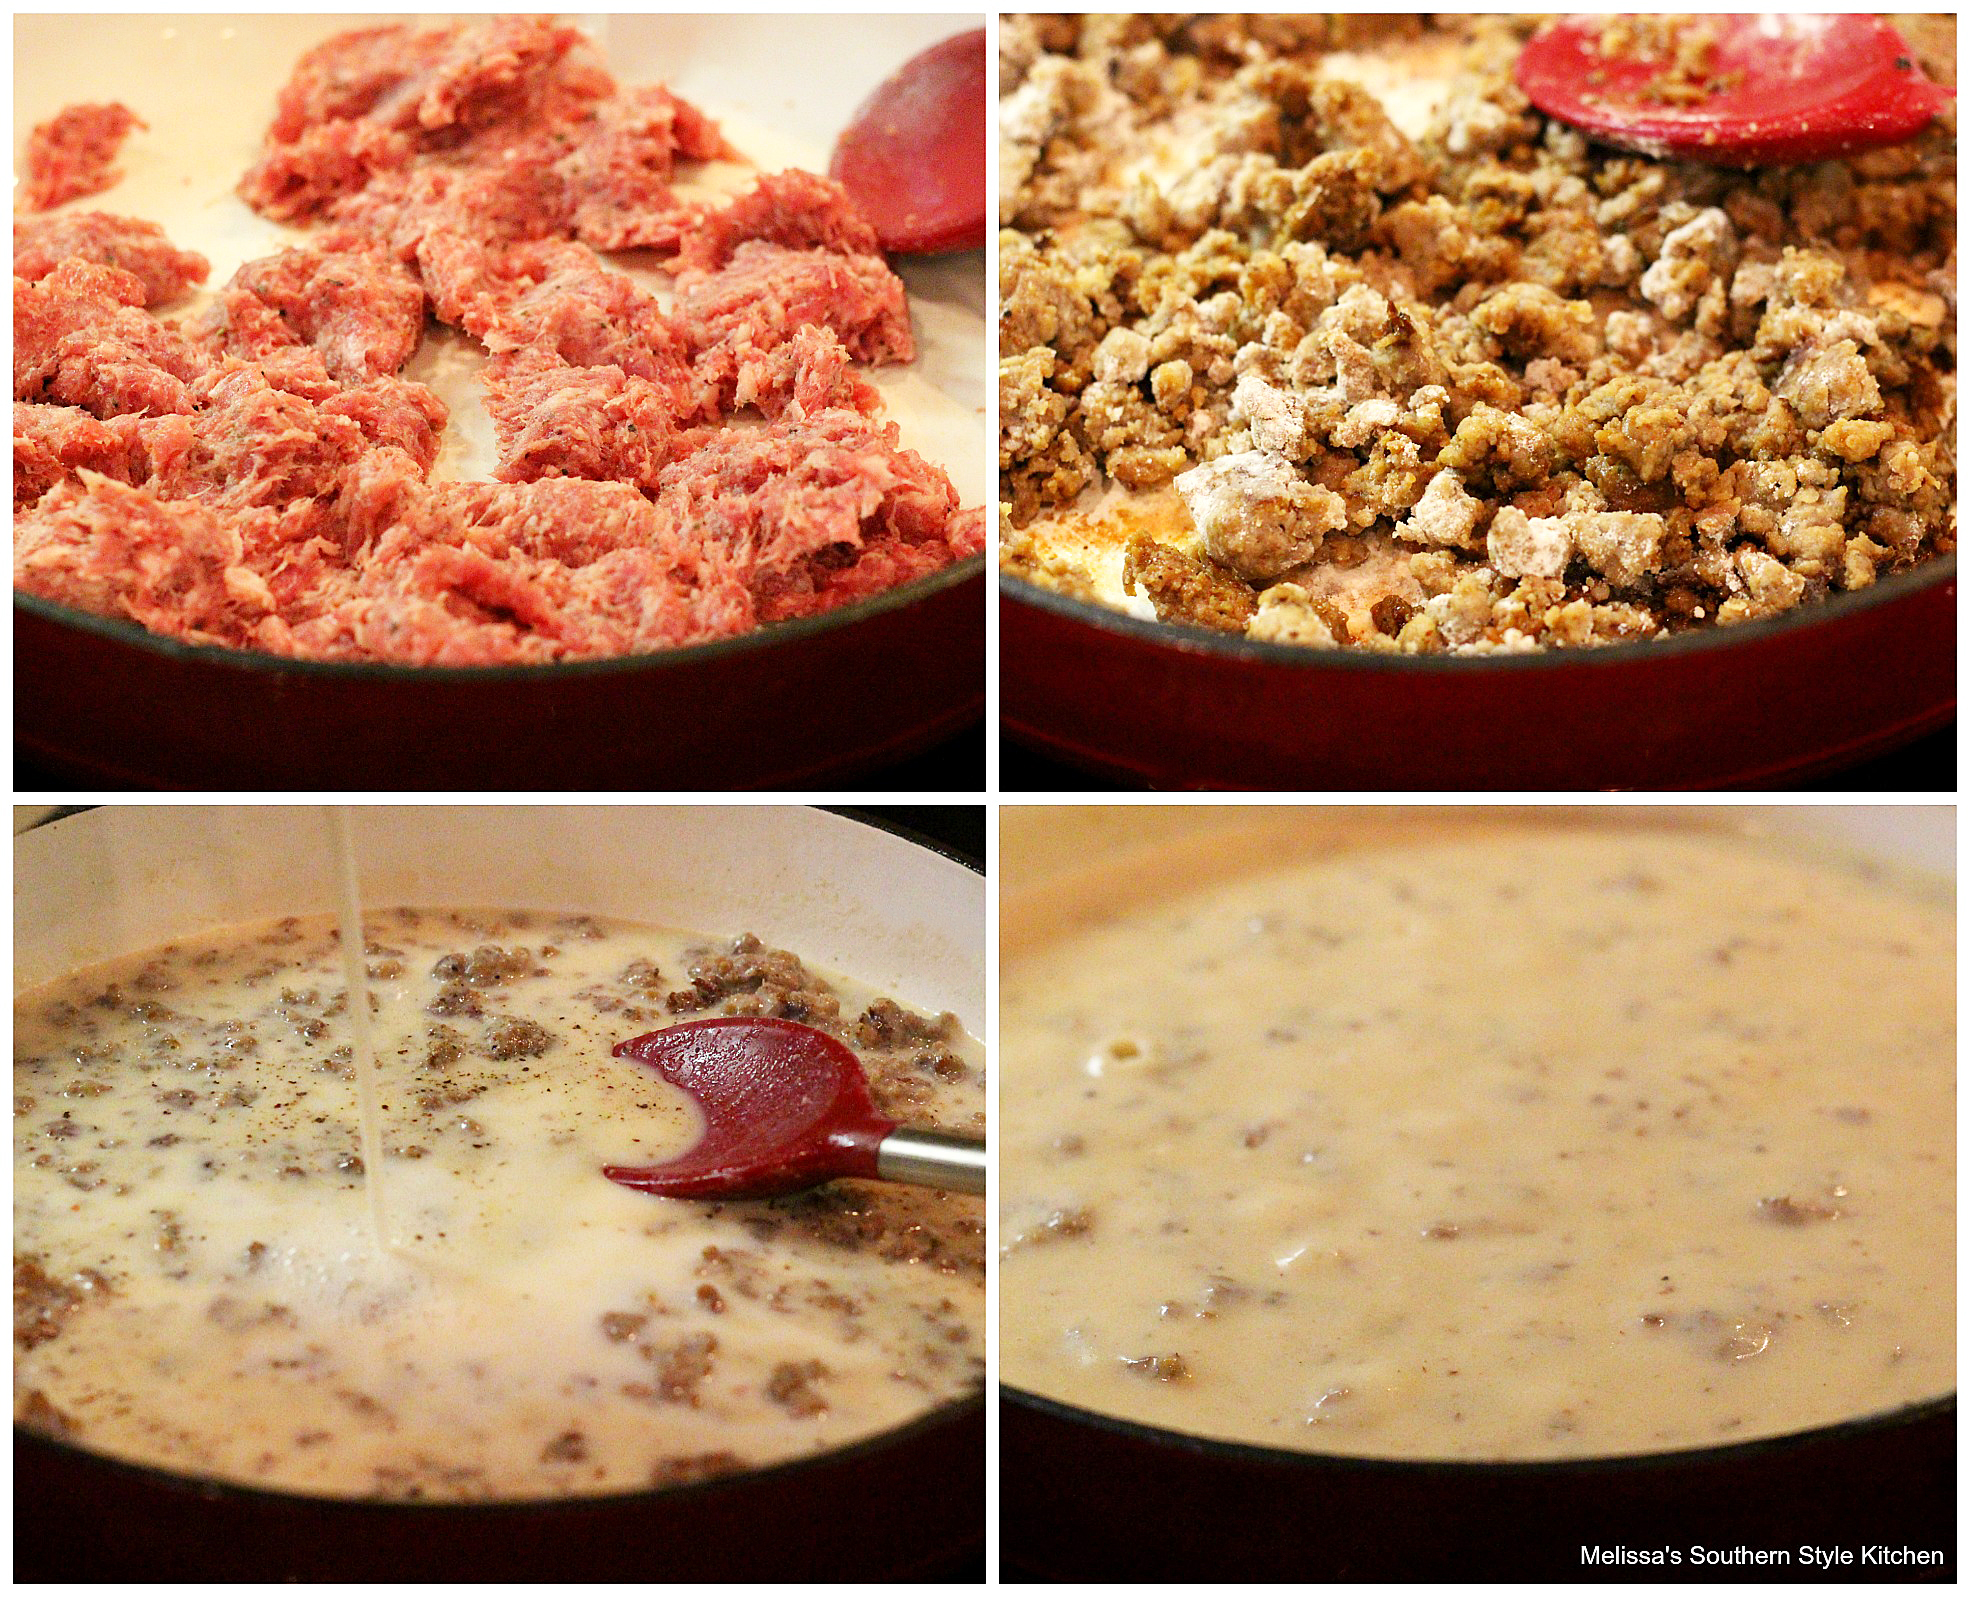 Step-by-step preparation images and ingredients for biscuits and gravy